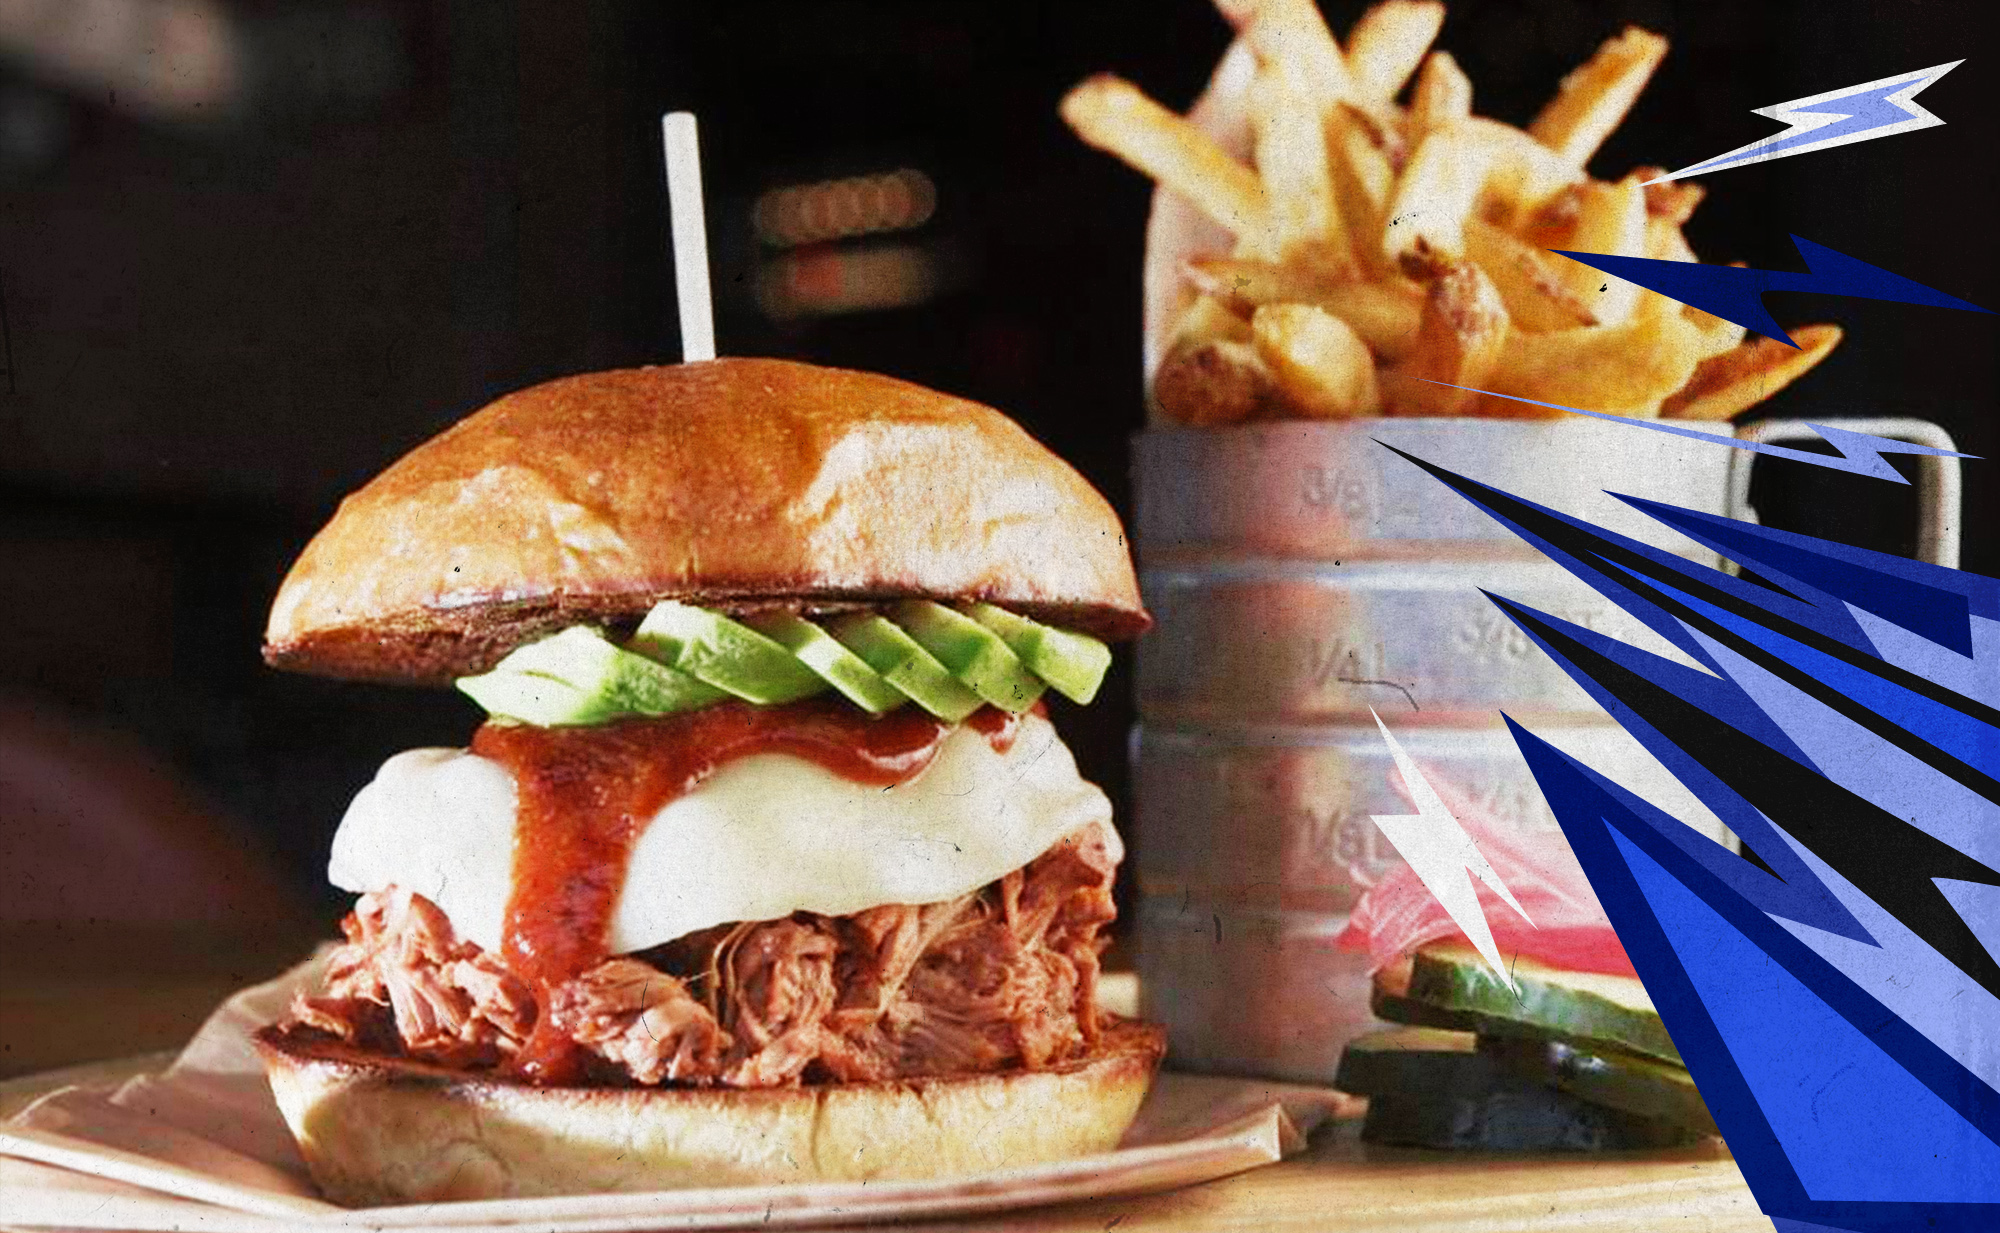 Photo of the Jackknife Sandwich with a side of fries from Char Bar in Kansas City